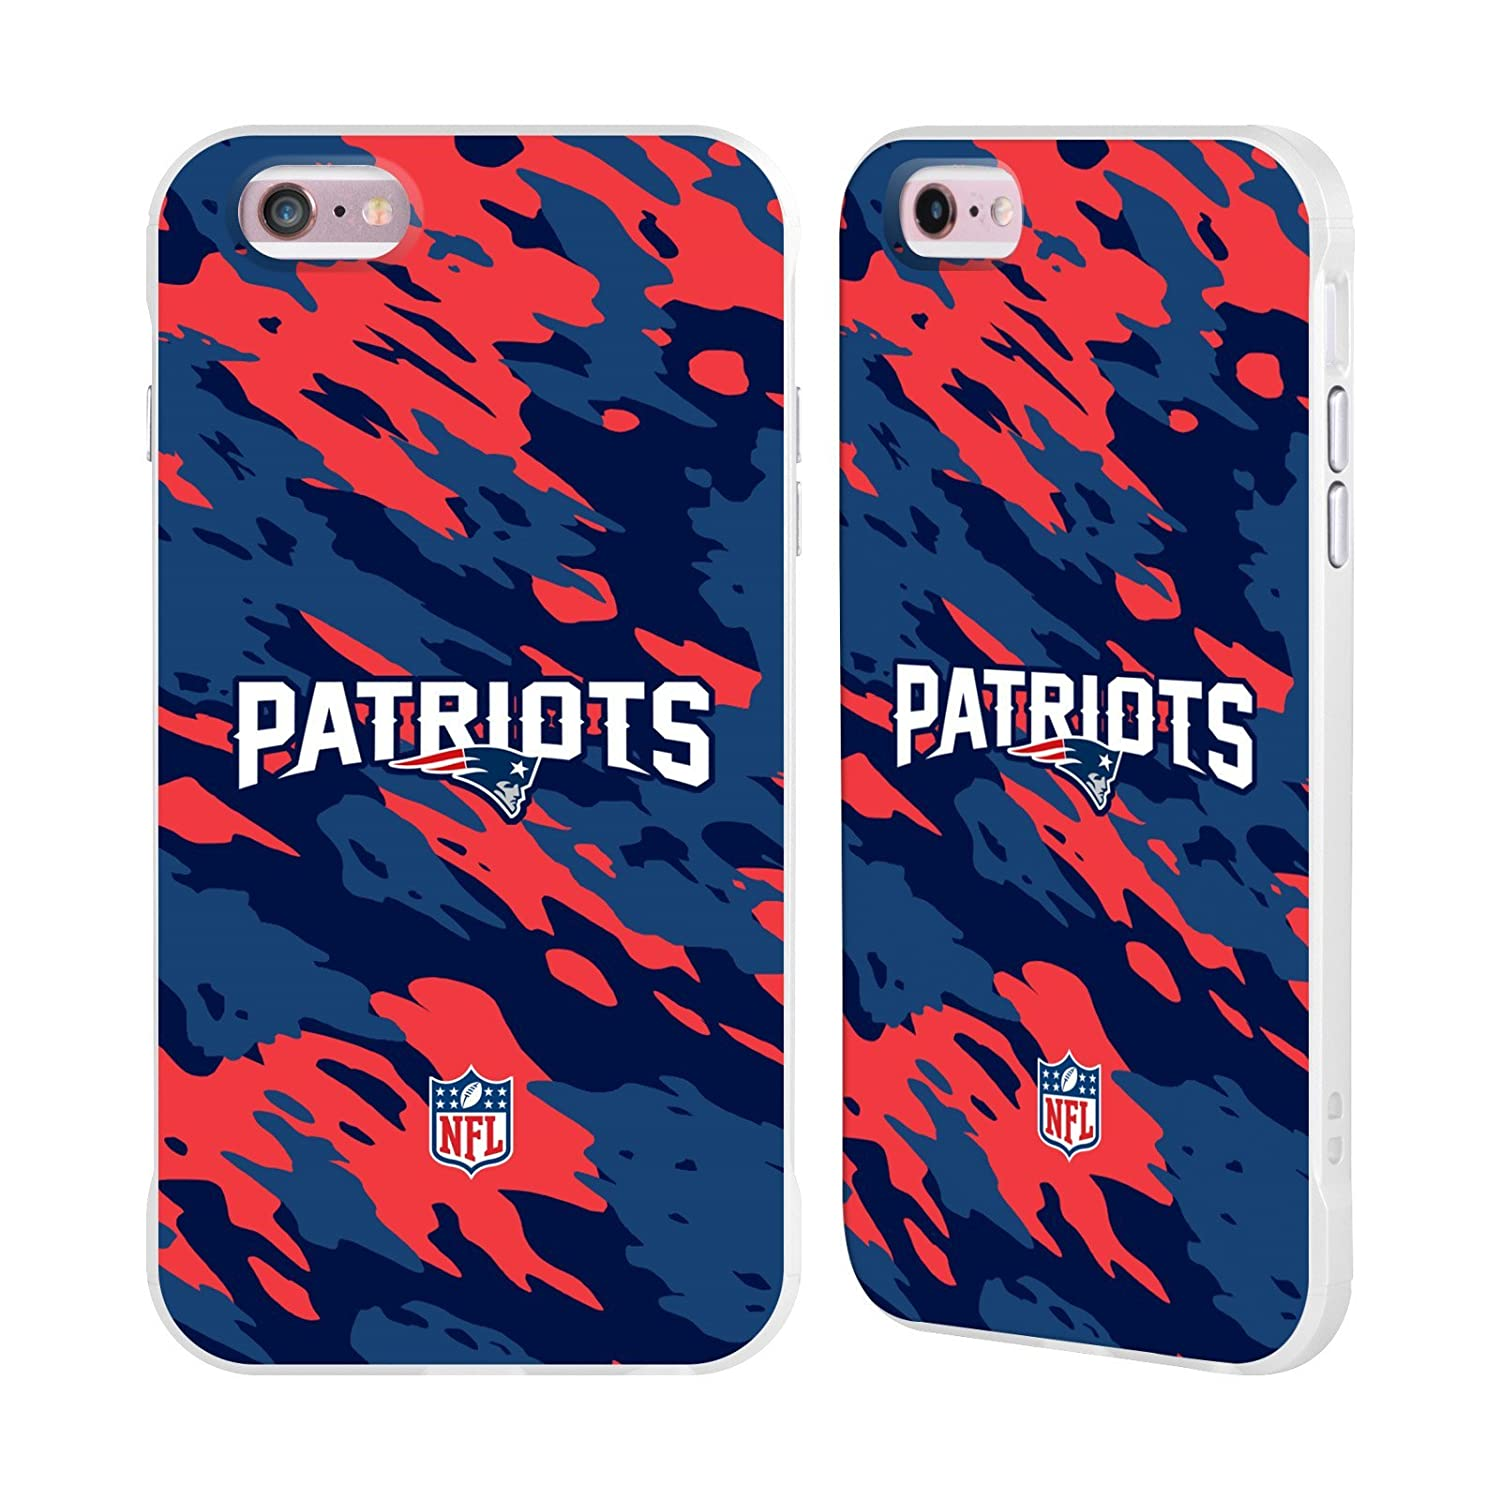 Ufficiale NFL Elmetto New England Patriots Logo Bianco Fender Case per Apple iPhone 6/iPhone 6s Head Case Designs H6021-IPH6-NFLLOENG-HEL